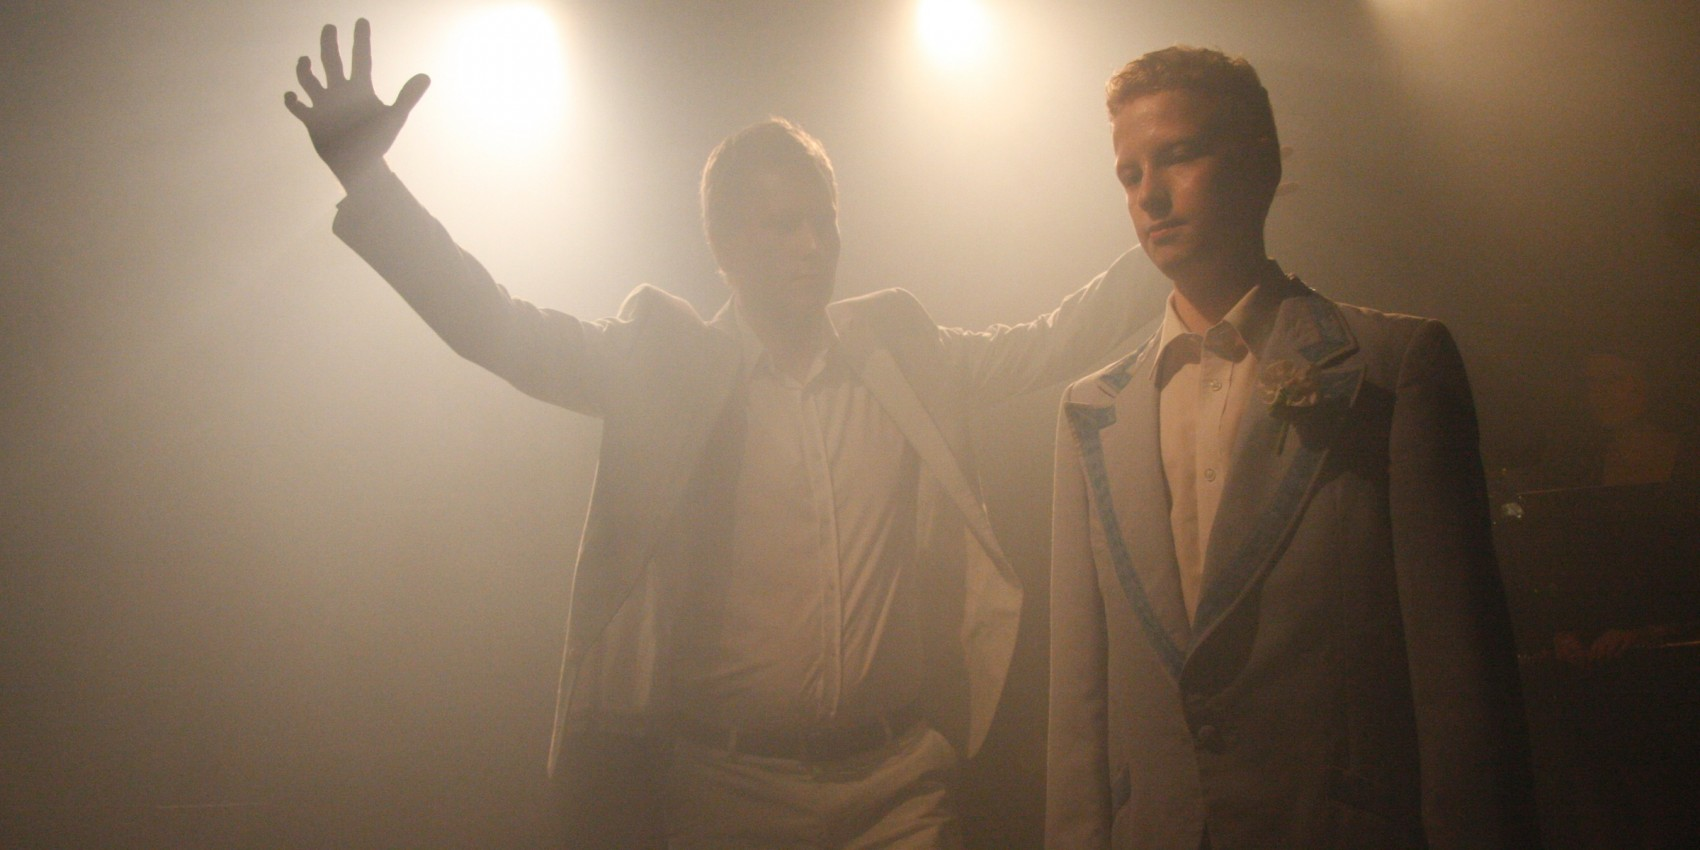 Production image of two men in grey suits one with arms raised both under hazy light of spotlights